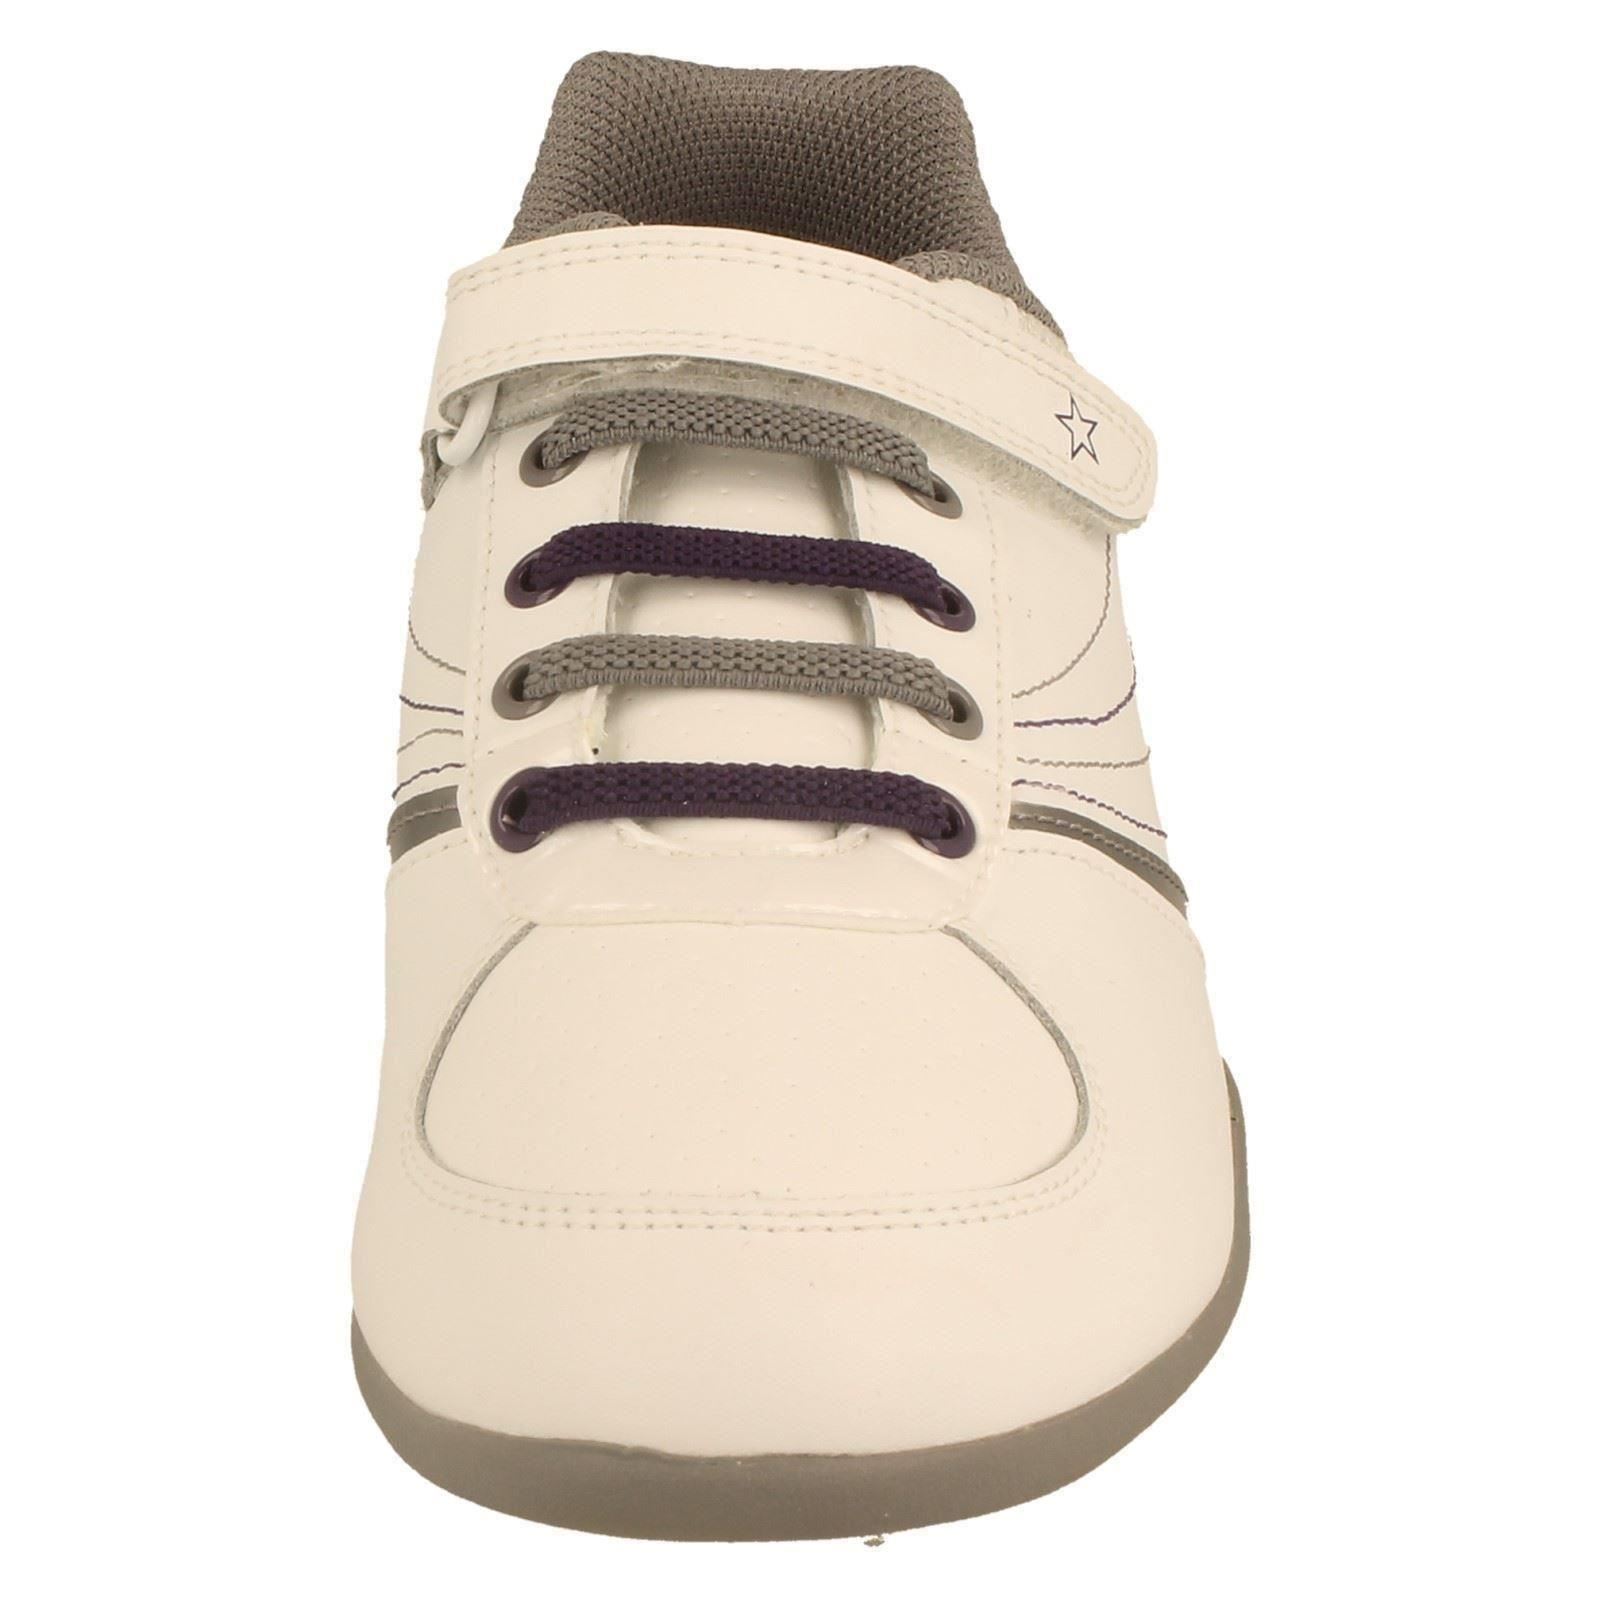 Senior Girls Bootleg by Clarks Leather Hook & Loop Riptape Trainers - Bling Chic